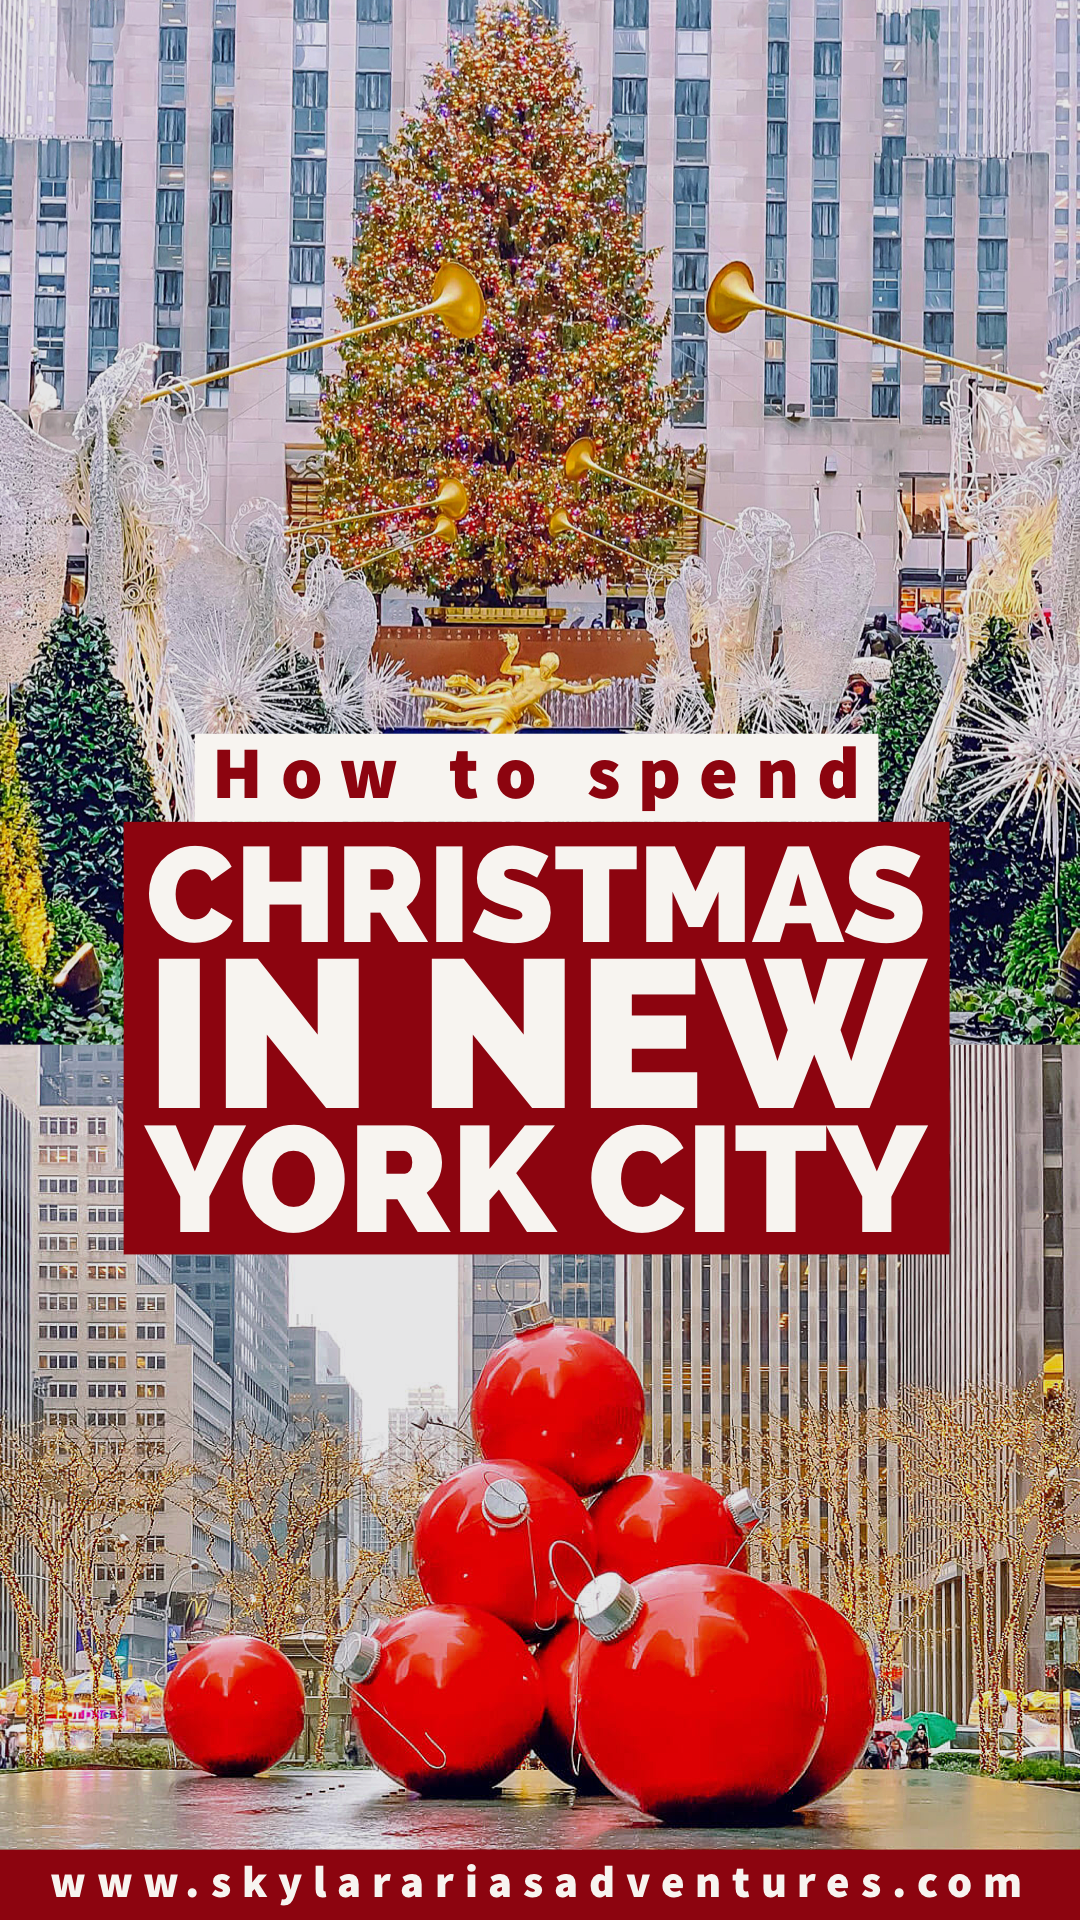 Top things to do during the holidays in New York City! New York comes alive all dressed up at Christmas time #christmasinnewyorkcity #christmasinNYC #newyorkcity #newyorkcitytravel #christmastravel #travel #familytravel #tripideas #traveltips #usdestinations